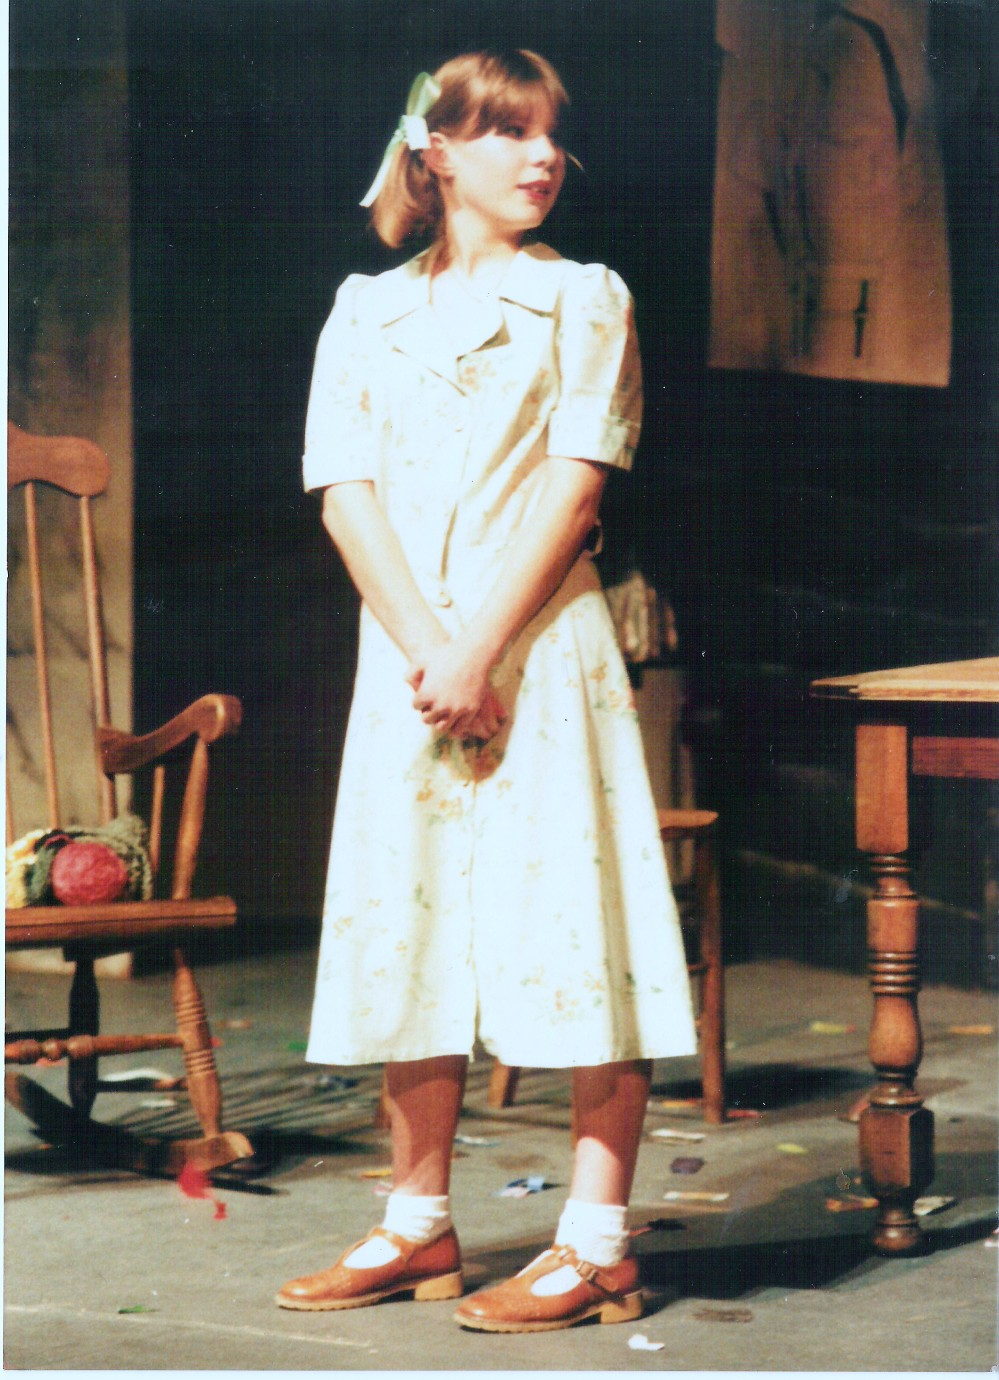 In one of her early roles in Am Dram